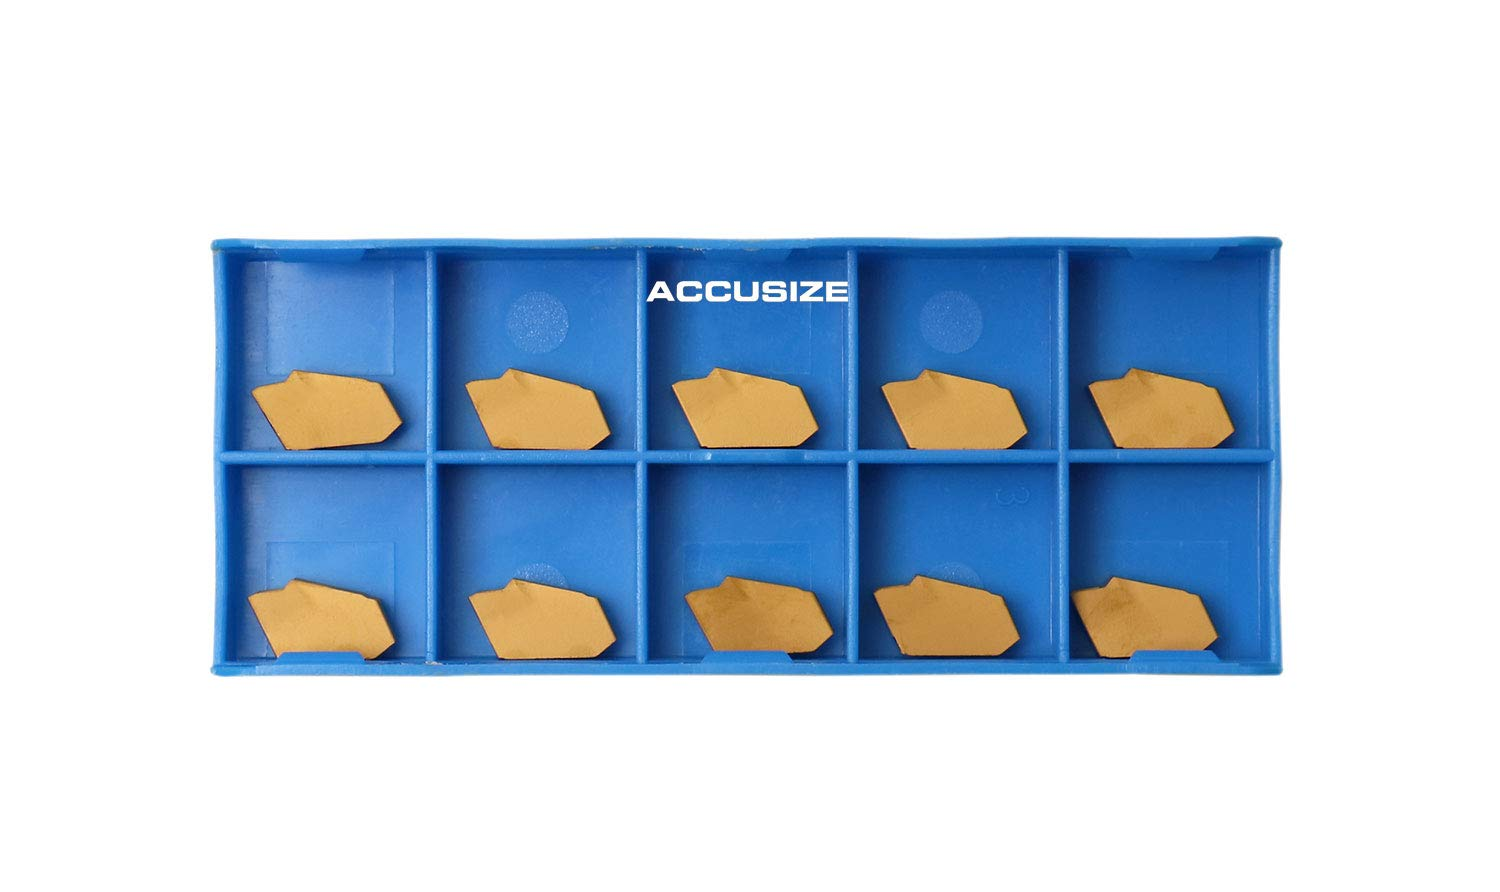 2403-2003x10 Accusize Industrial Tools Gtn-2 Tin Coated Carbide Inserts 10 Pcs//Box